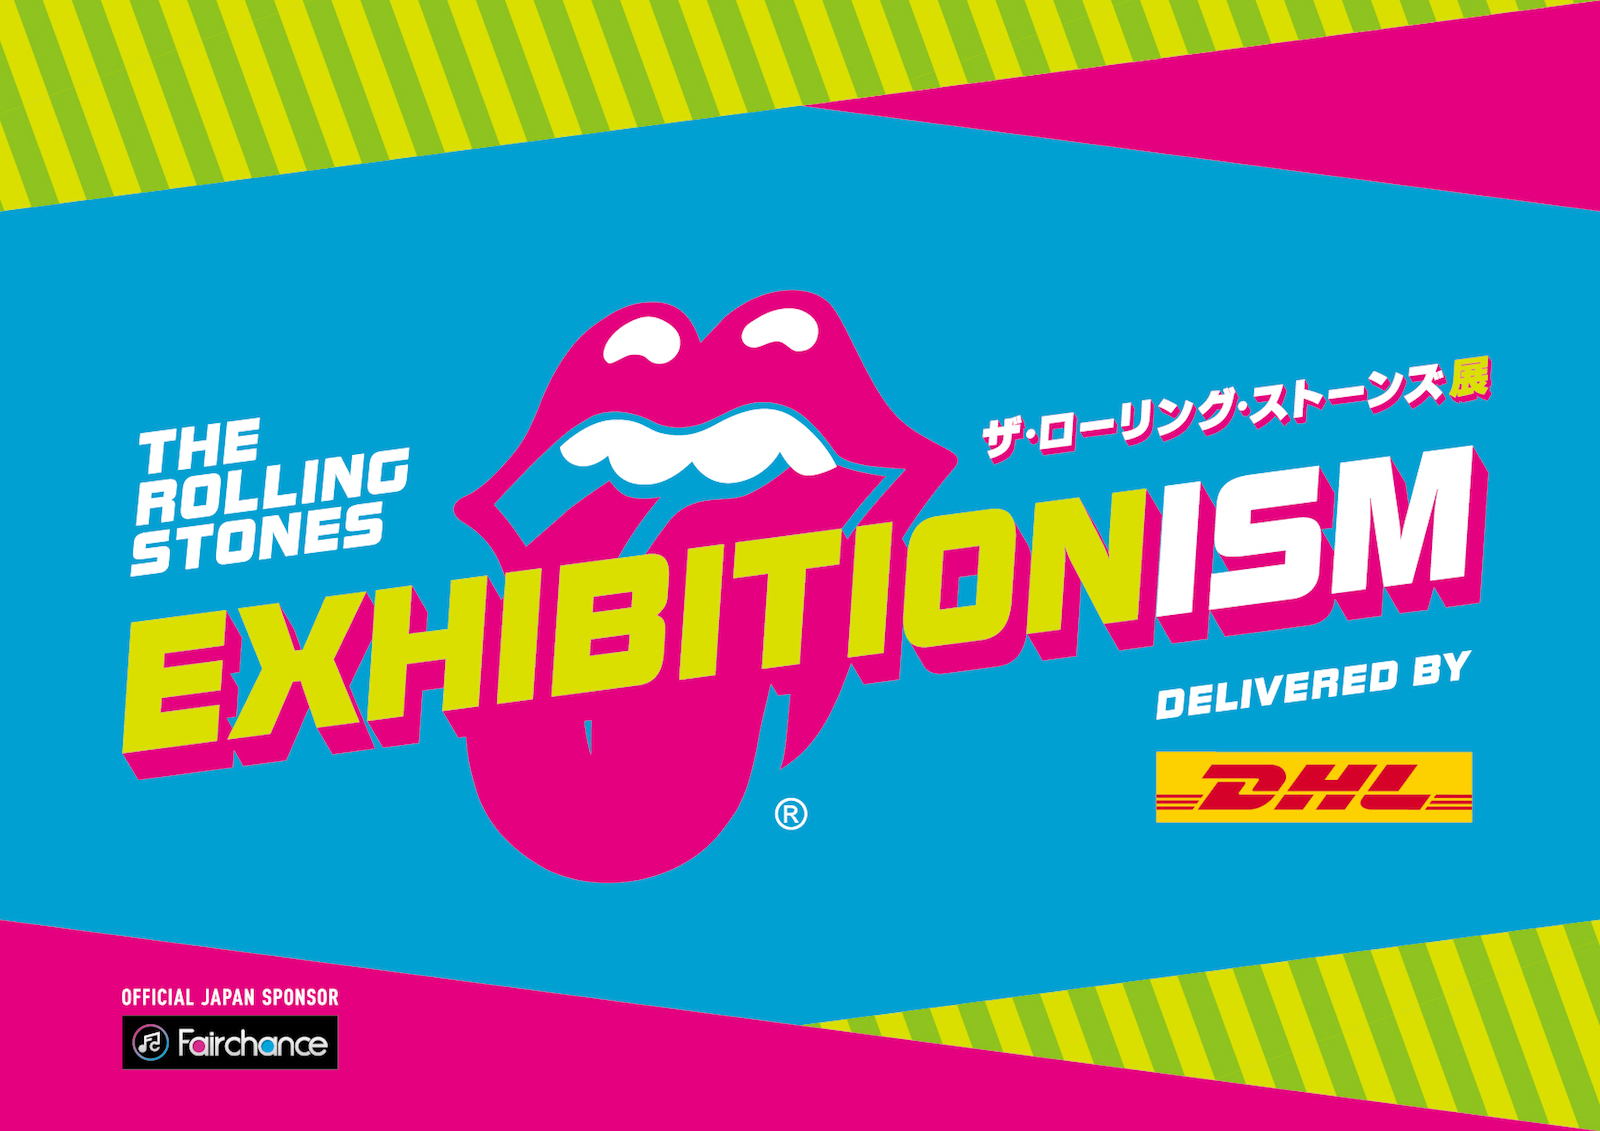 The Rolling Stones Exhibit drawing fans in Japan - Japan Today